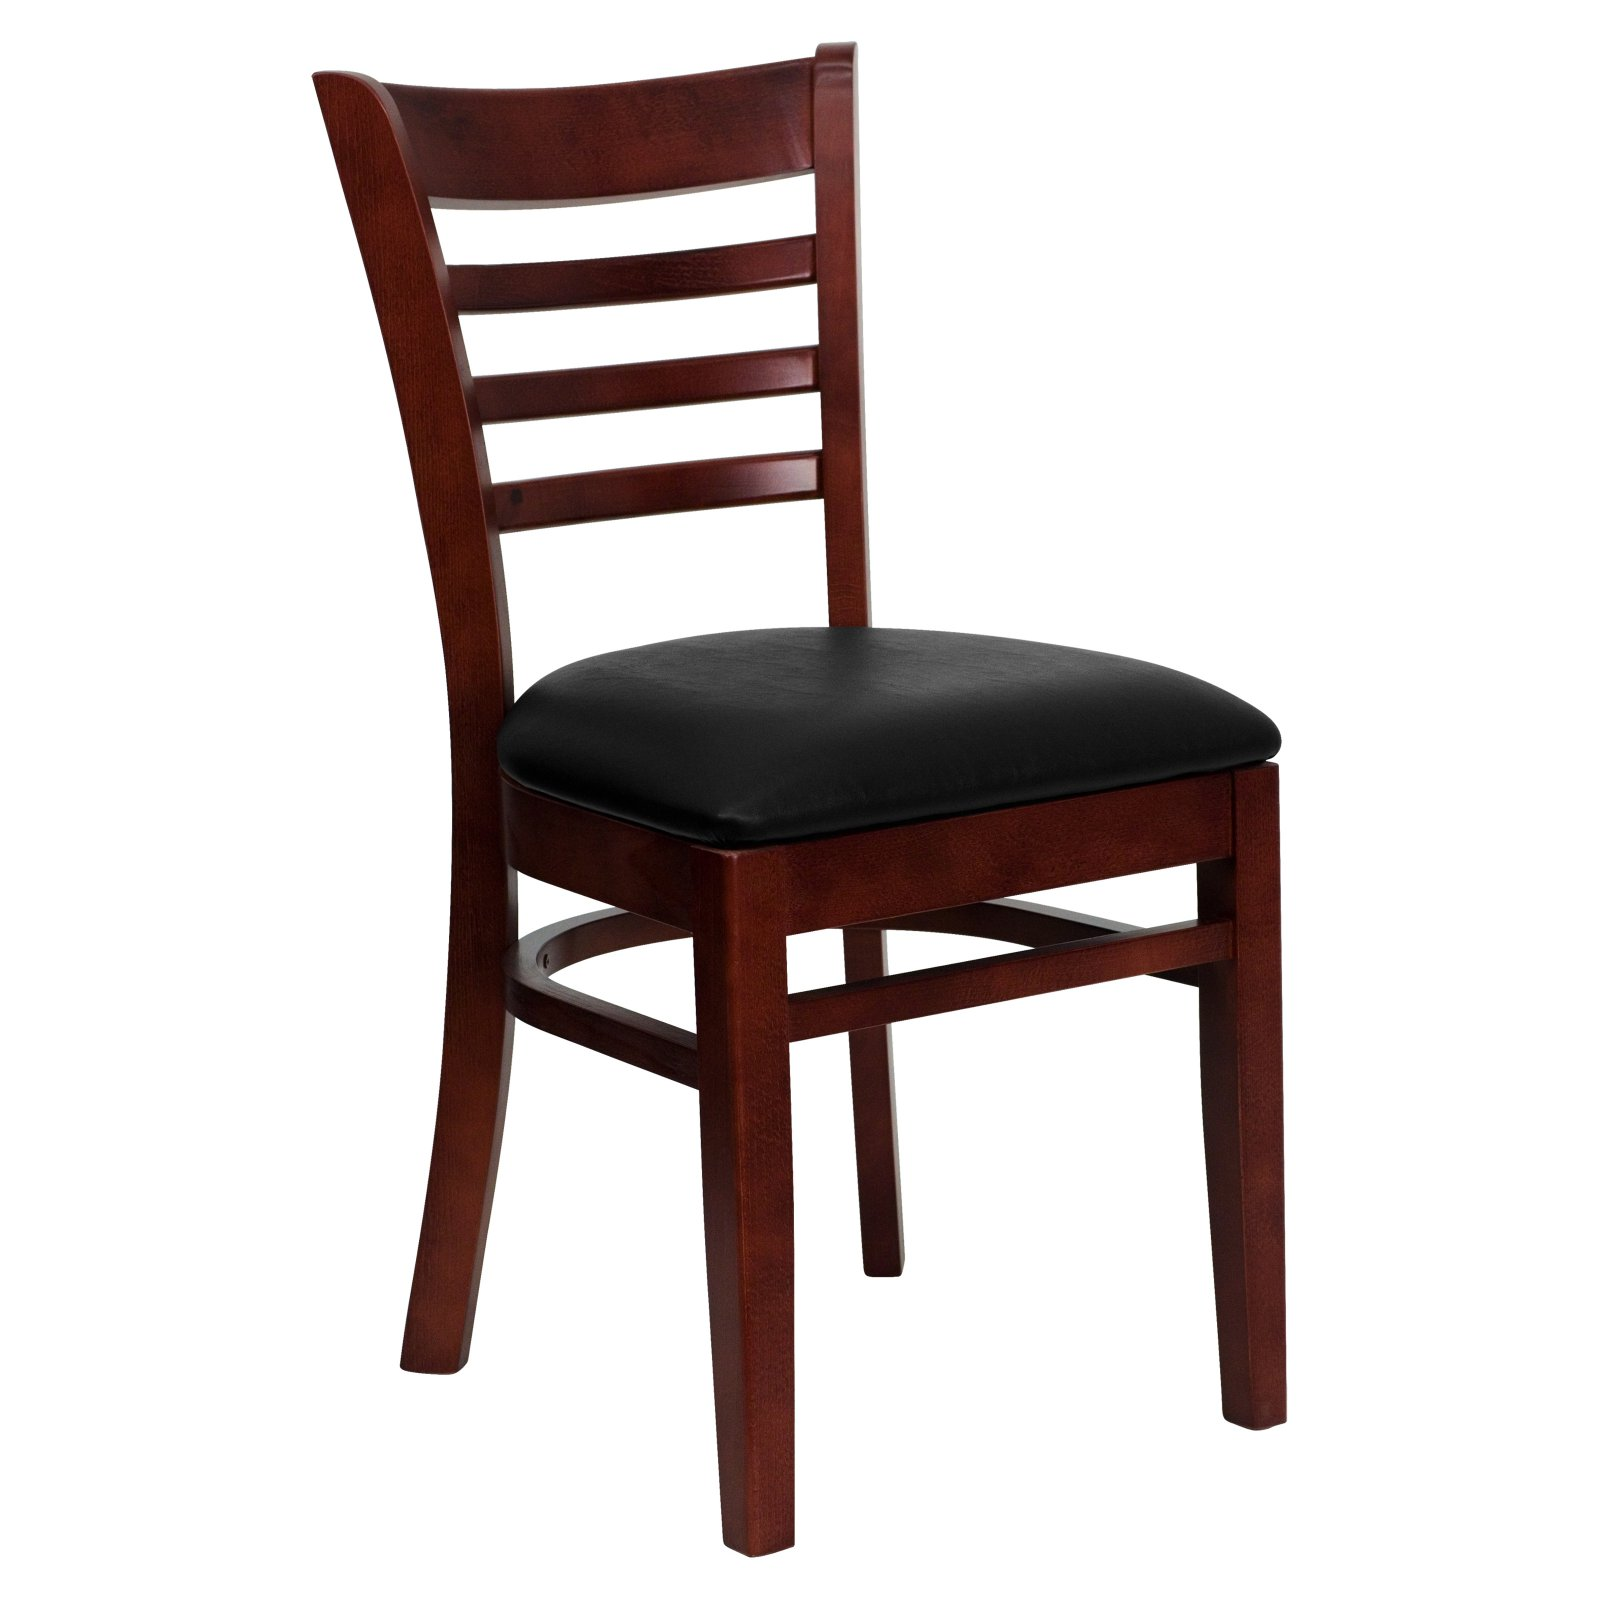 Flash Furniture HERCULES Series Mahogany Finished Ladder Back Wooden Restaurant Chair, Vinyl Seat, Multiple Colors